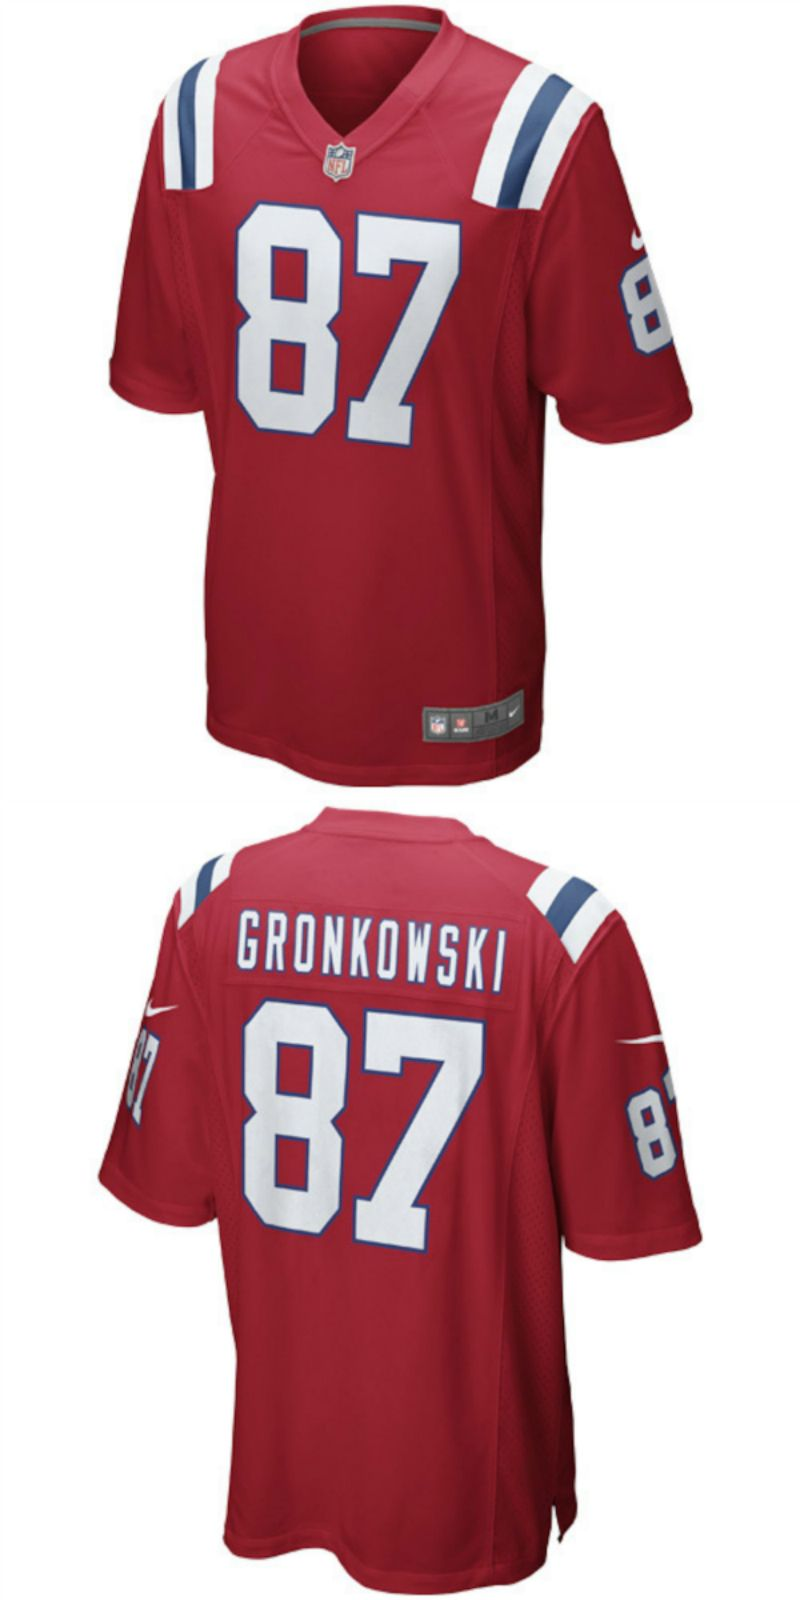 new style 3eb61 1d282 UP TO 70% OFF. Rob Gronkowski New England Patriots Nike ...